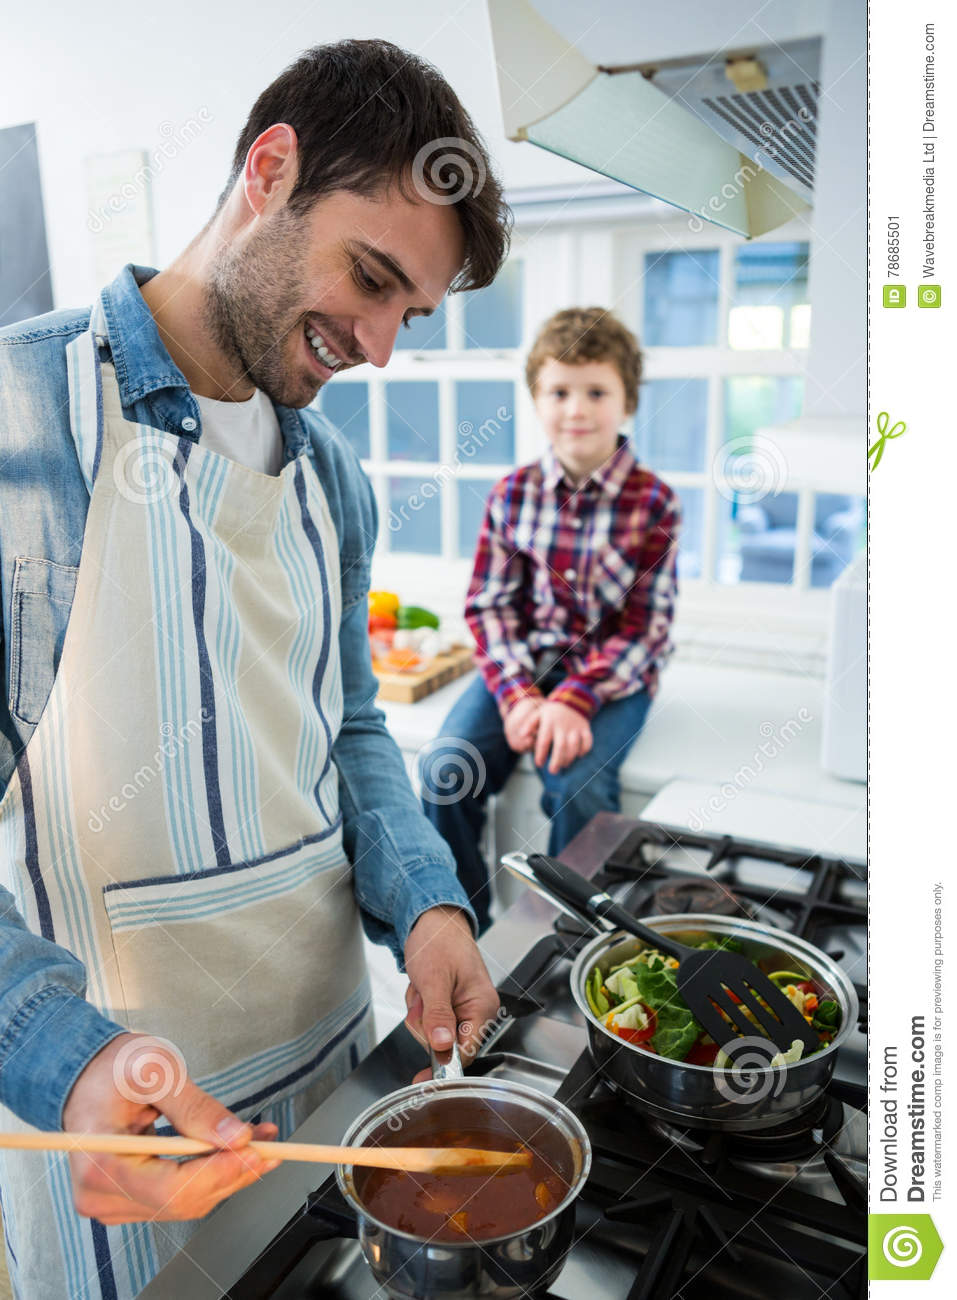 Boy Looking While Father Cooking Food Stock Image - Image of ...